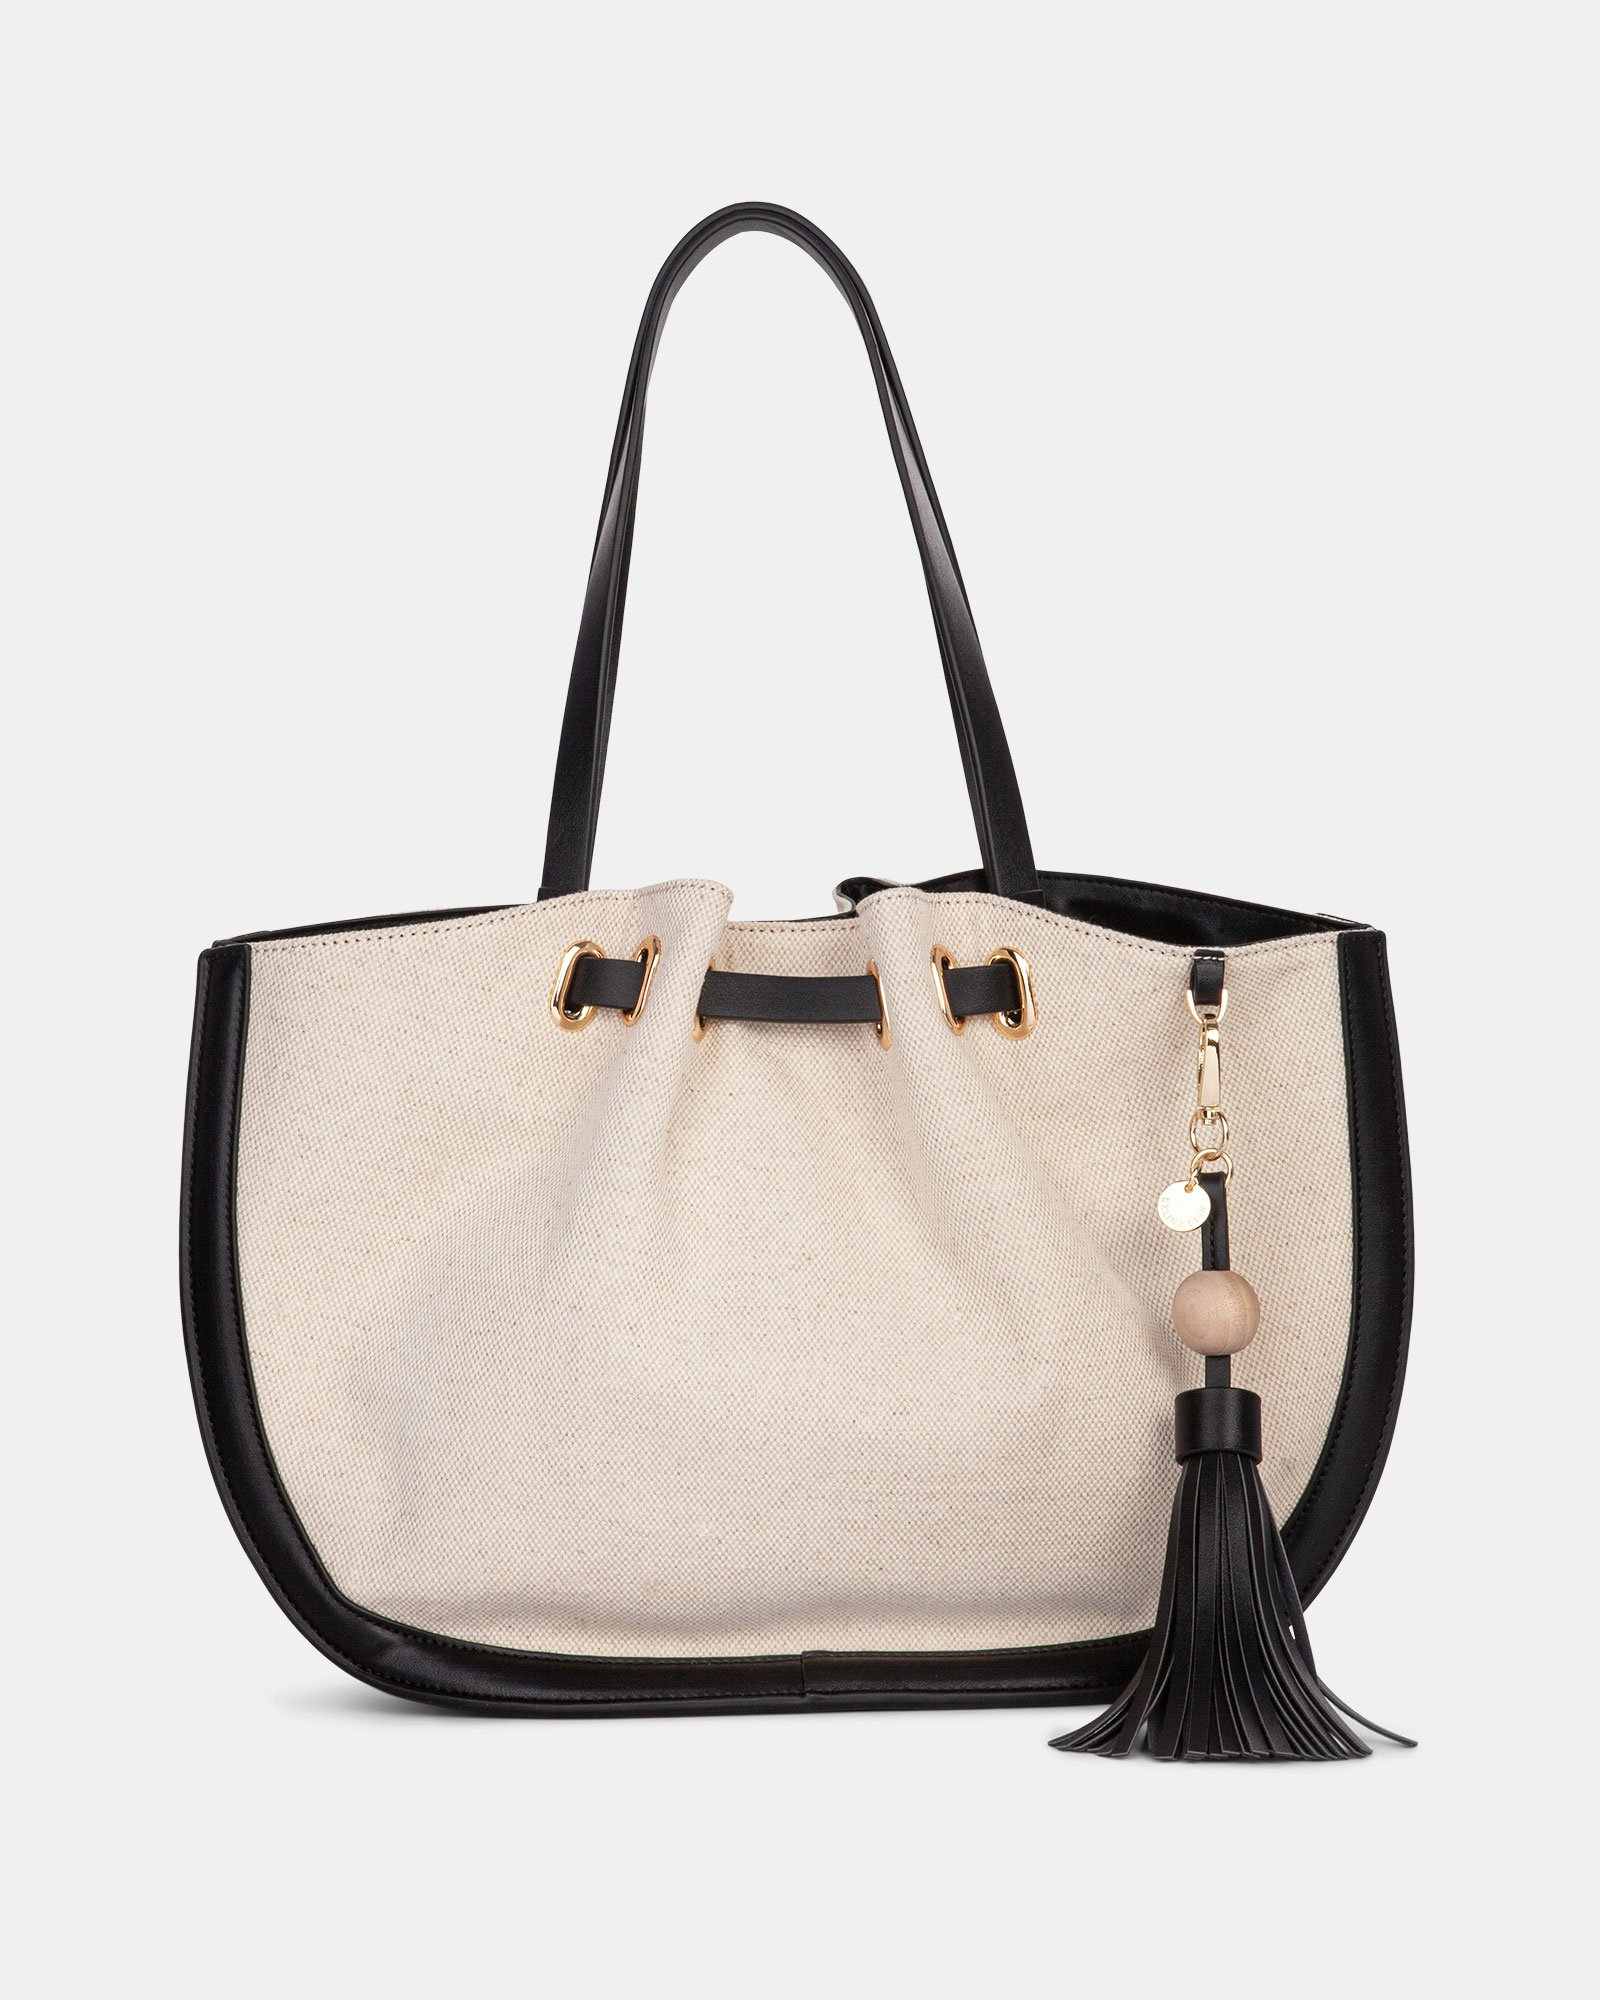 Garbo - Tote bag Canvas & leather-like trims - Natural/Black - Céline Dion - Zoom